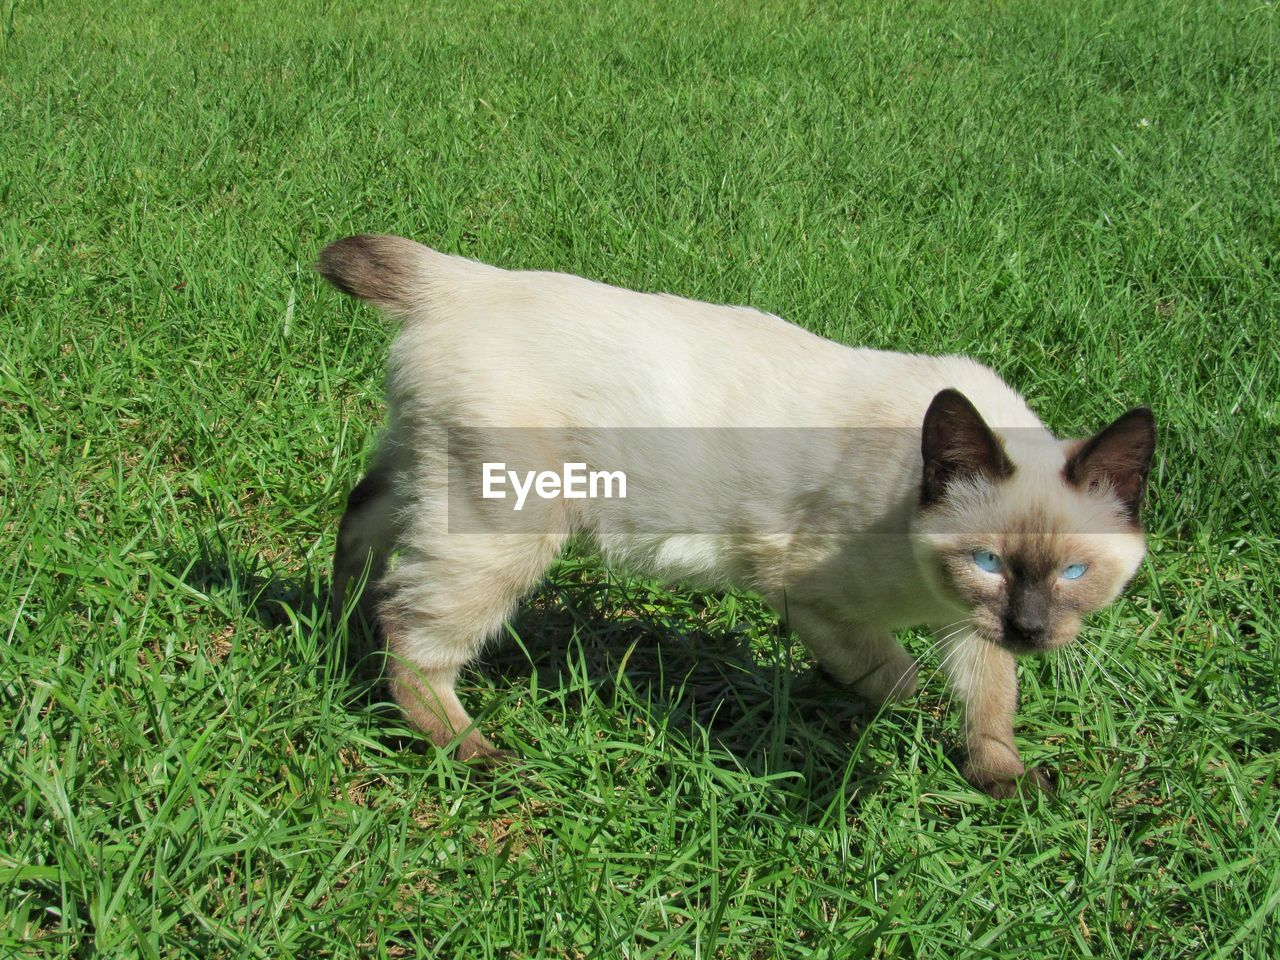 domestic, pets, mammal, domestic animals, animal, animal themes, one animal, grass, plant, vertebrate, cat, green color, domestic cat, feline, field, nature, land, full length, no people, high angle view, whisker